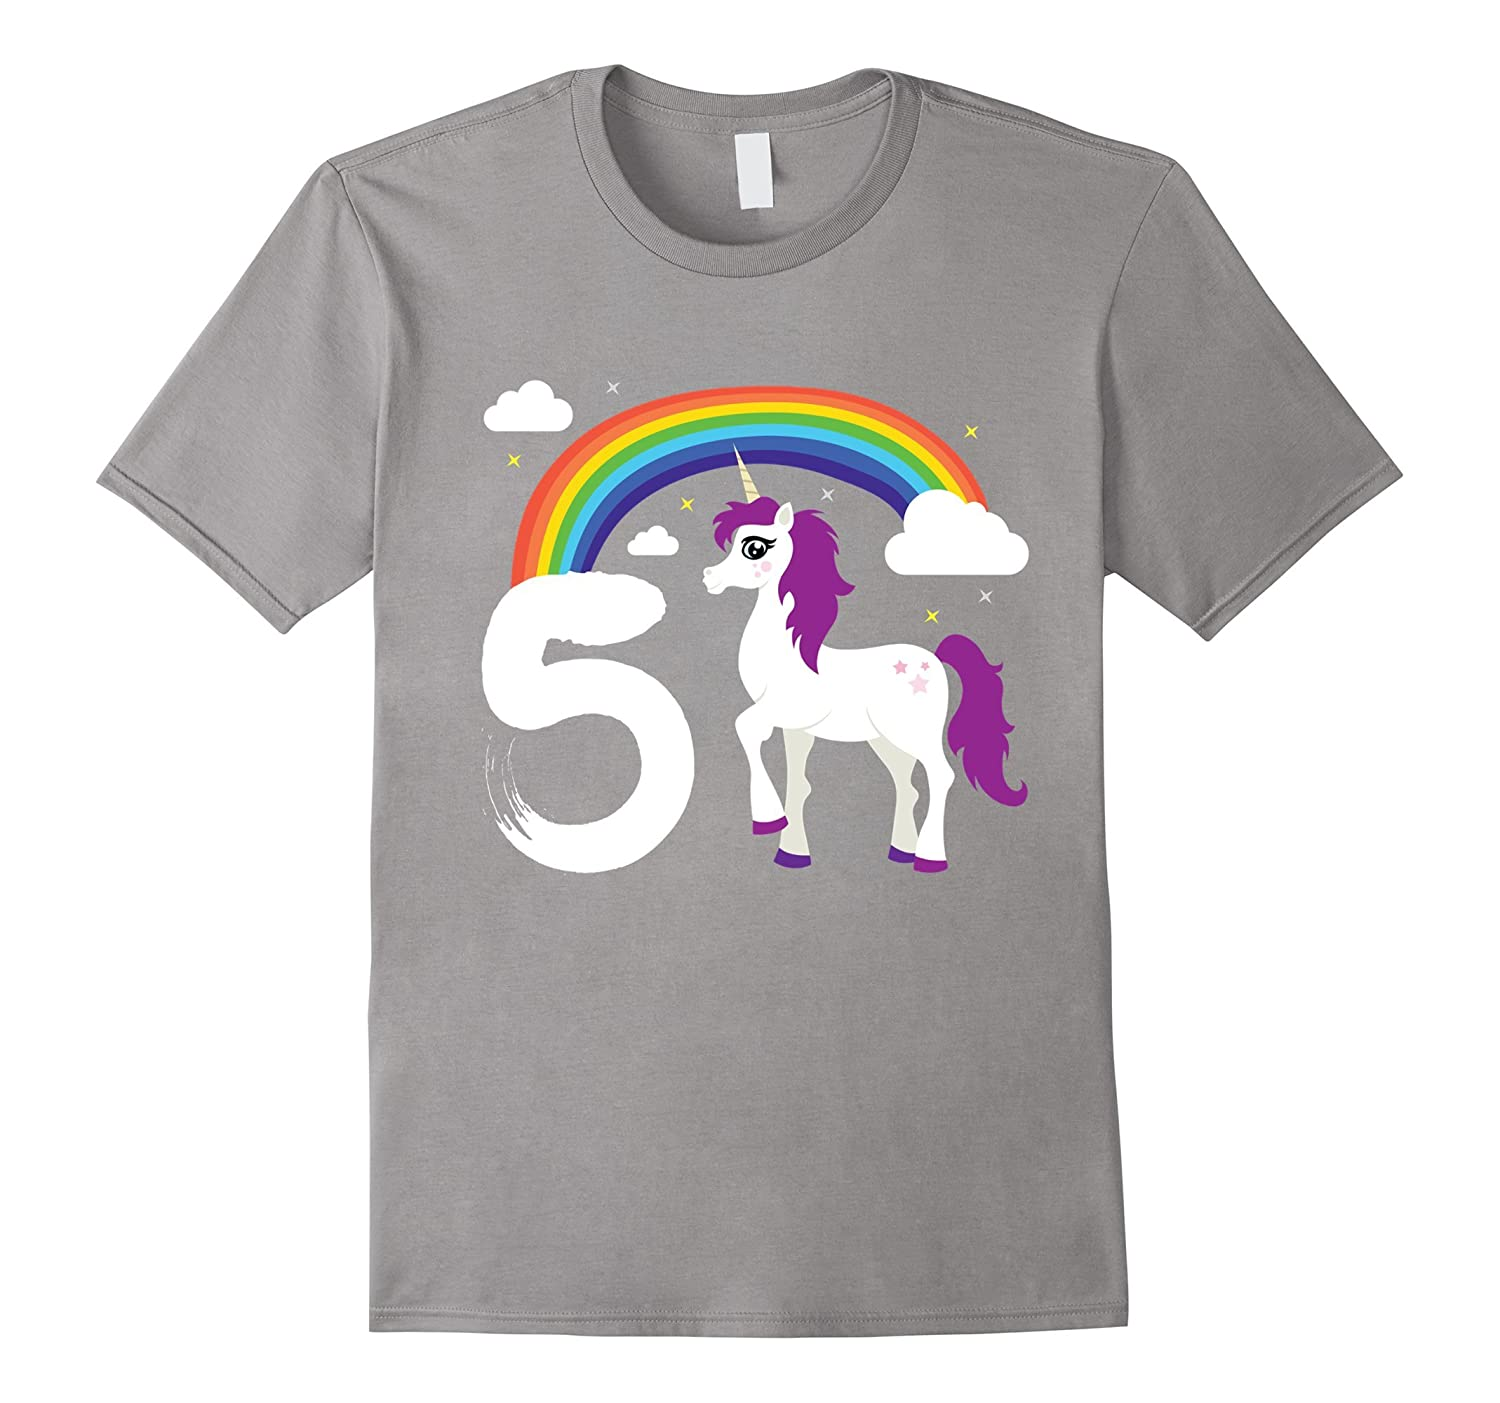 5th Birthday Girl Unicorn Rainbow Cloud Party T-Shirt Gift-CL